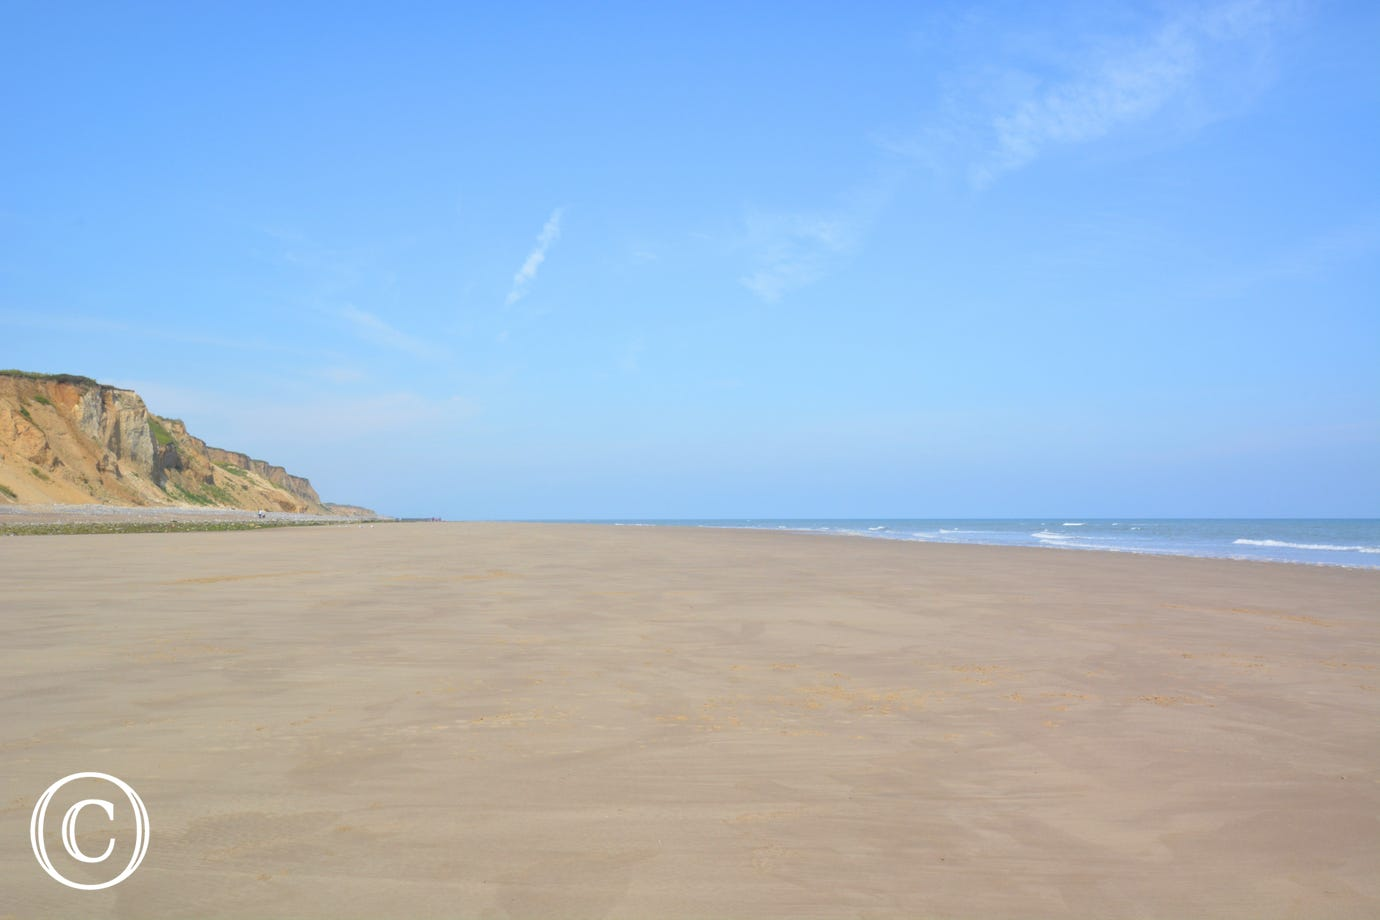 The beach at East Runton, just a stones throw away